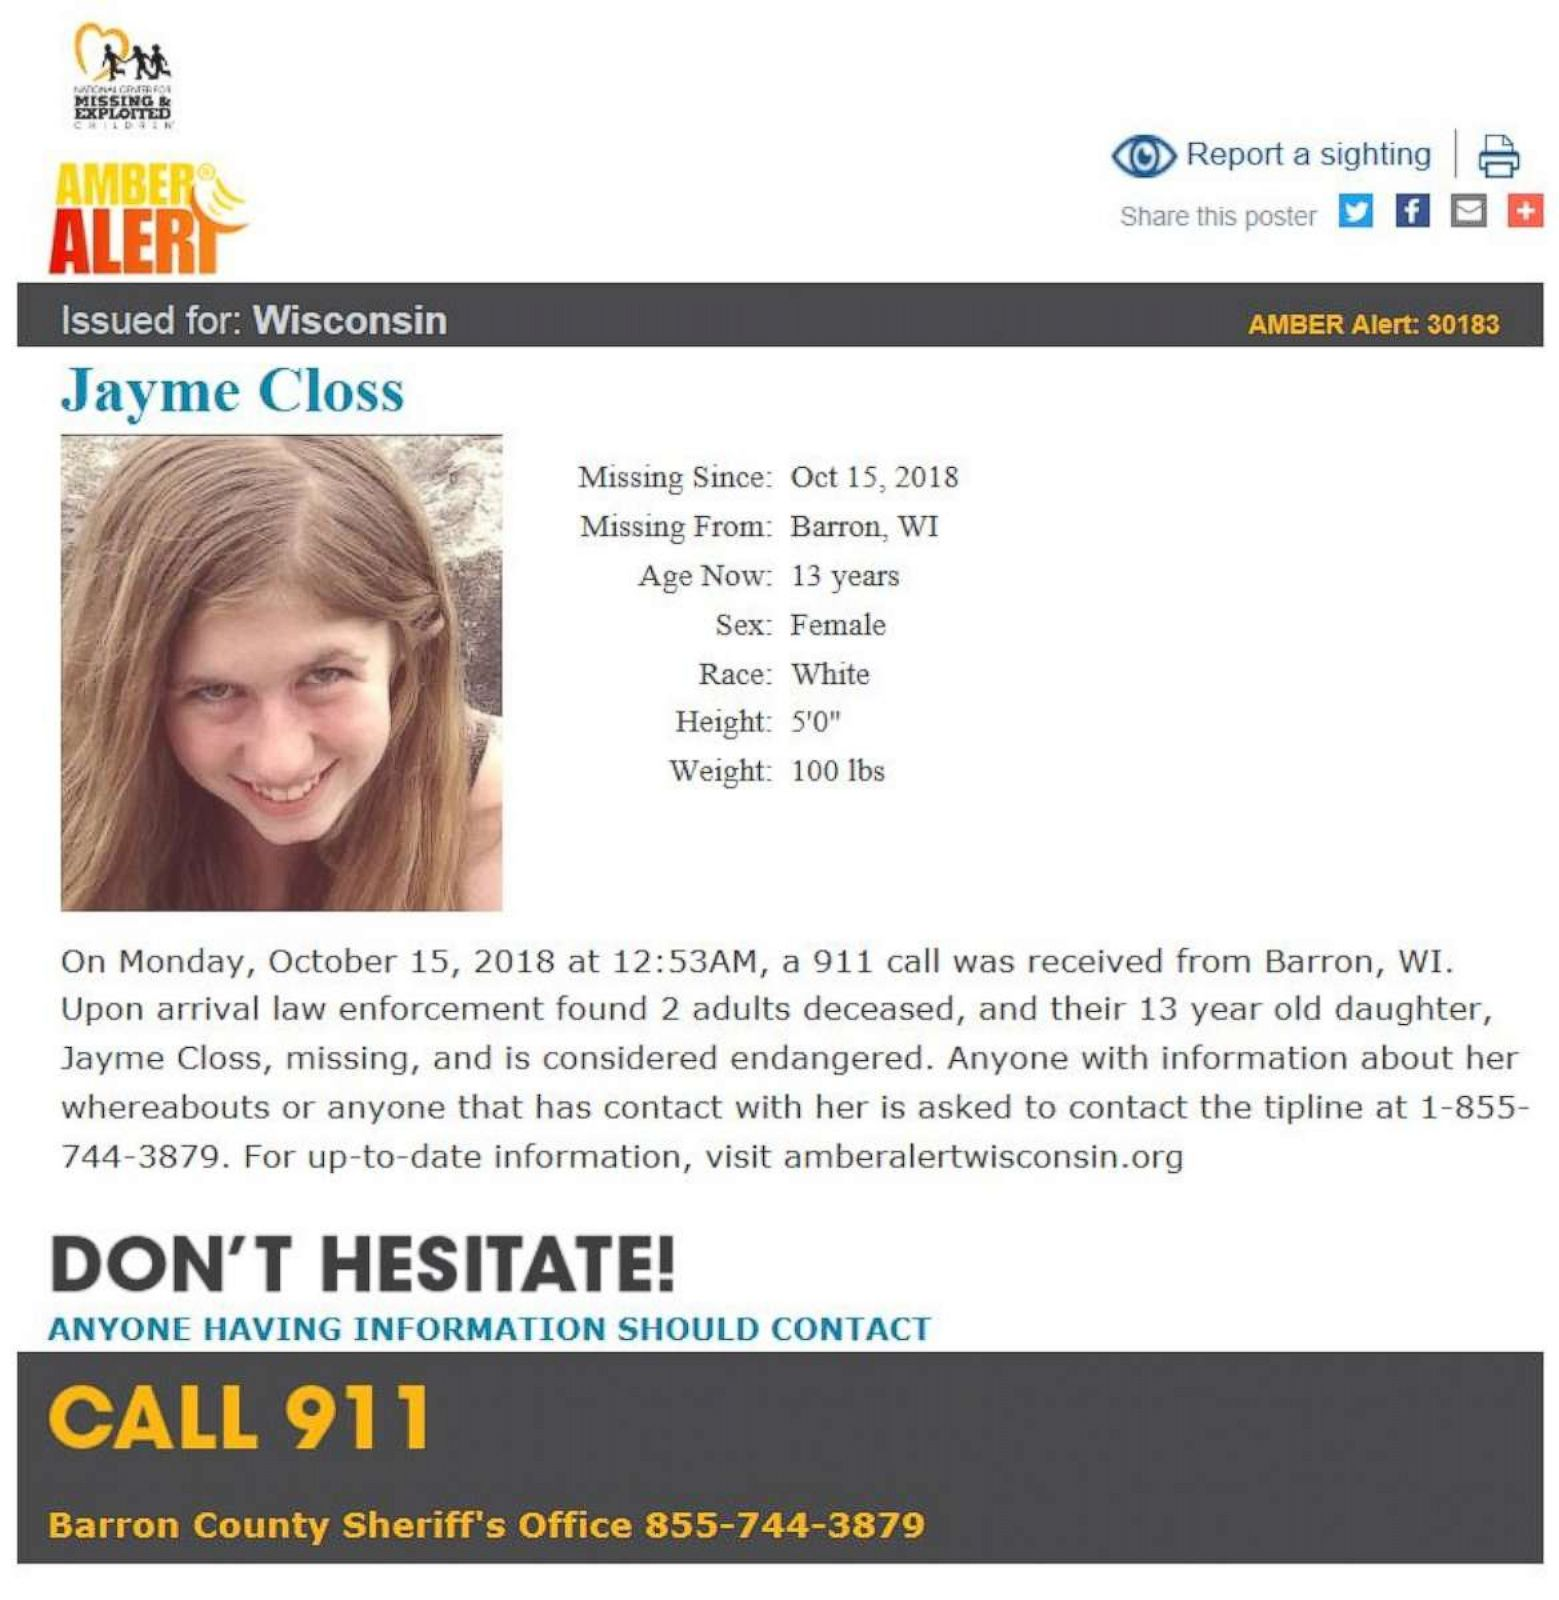 88 days in captivity: The saga of 13-year-old Jayme Closs from